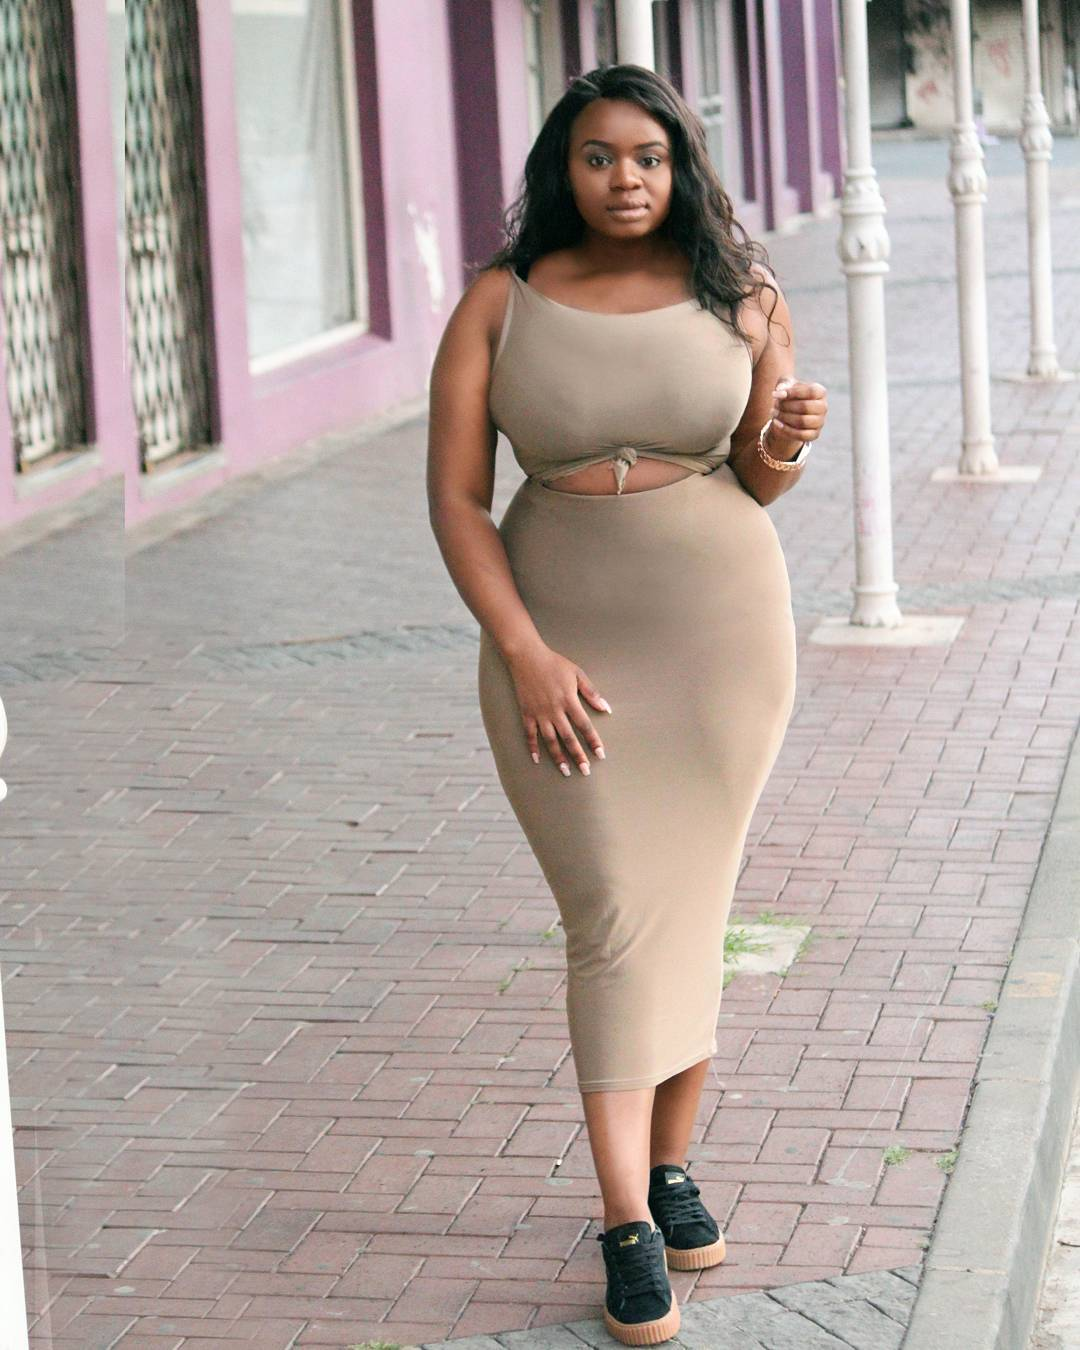 Check Out These Hot Casual Outfits For Curvy Ladies! - Kamdora Blog